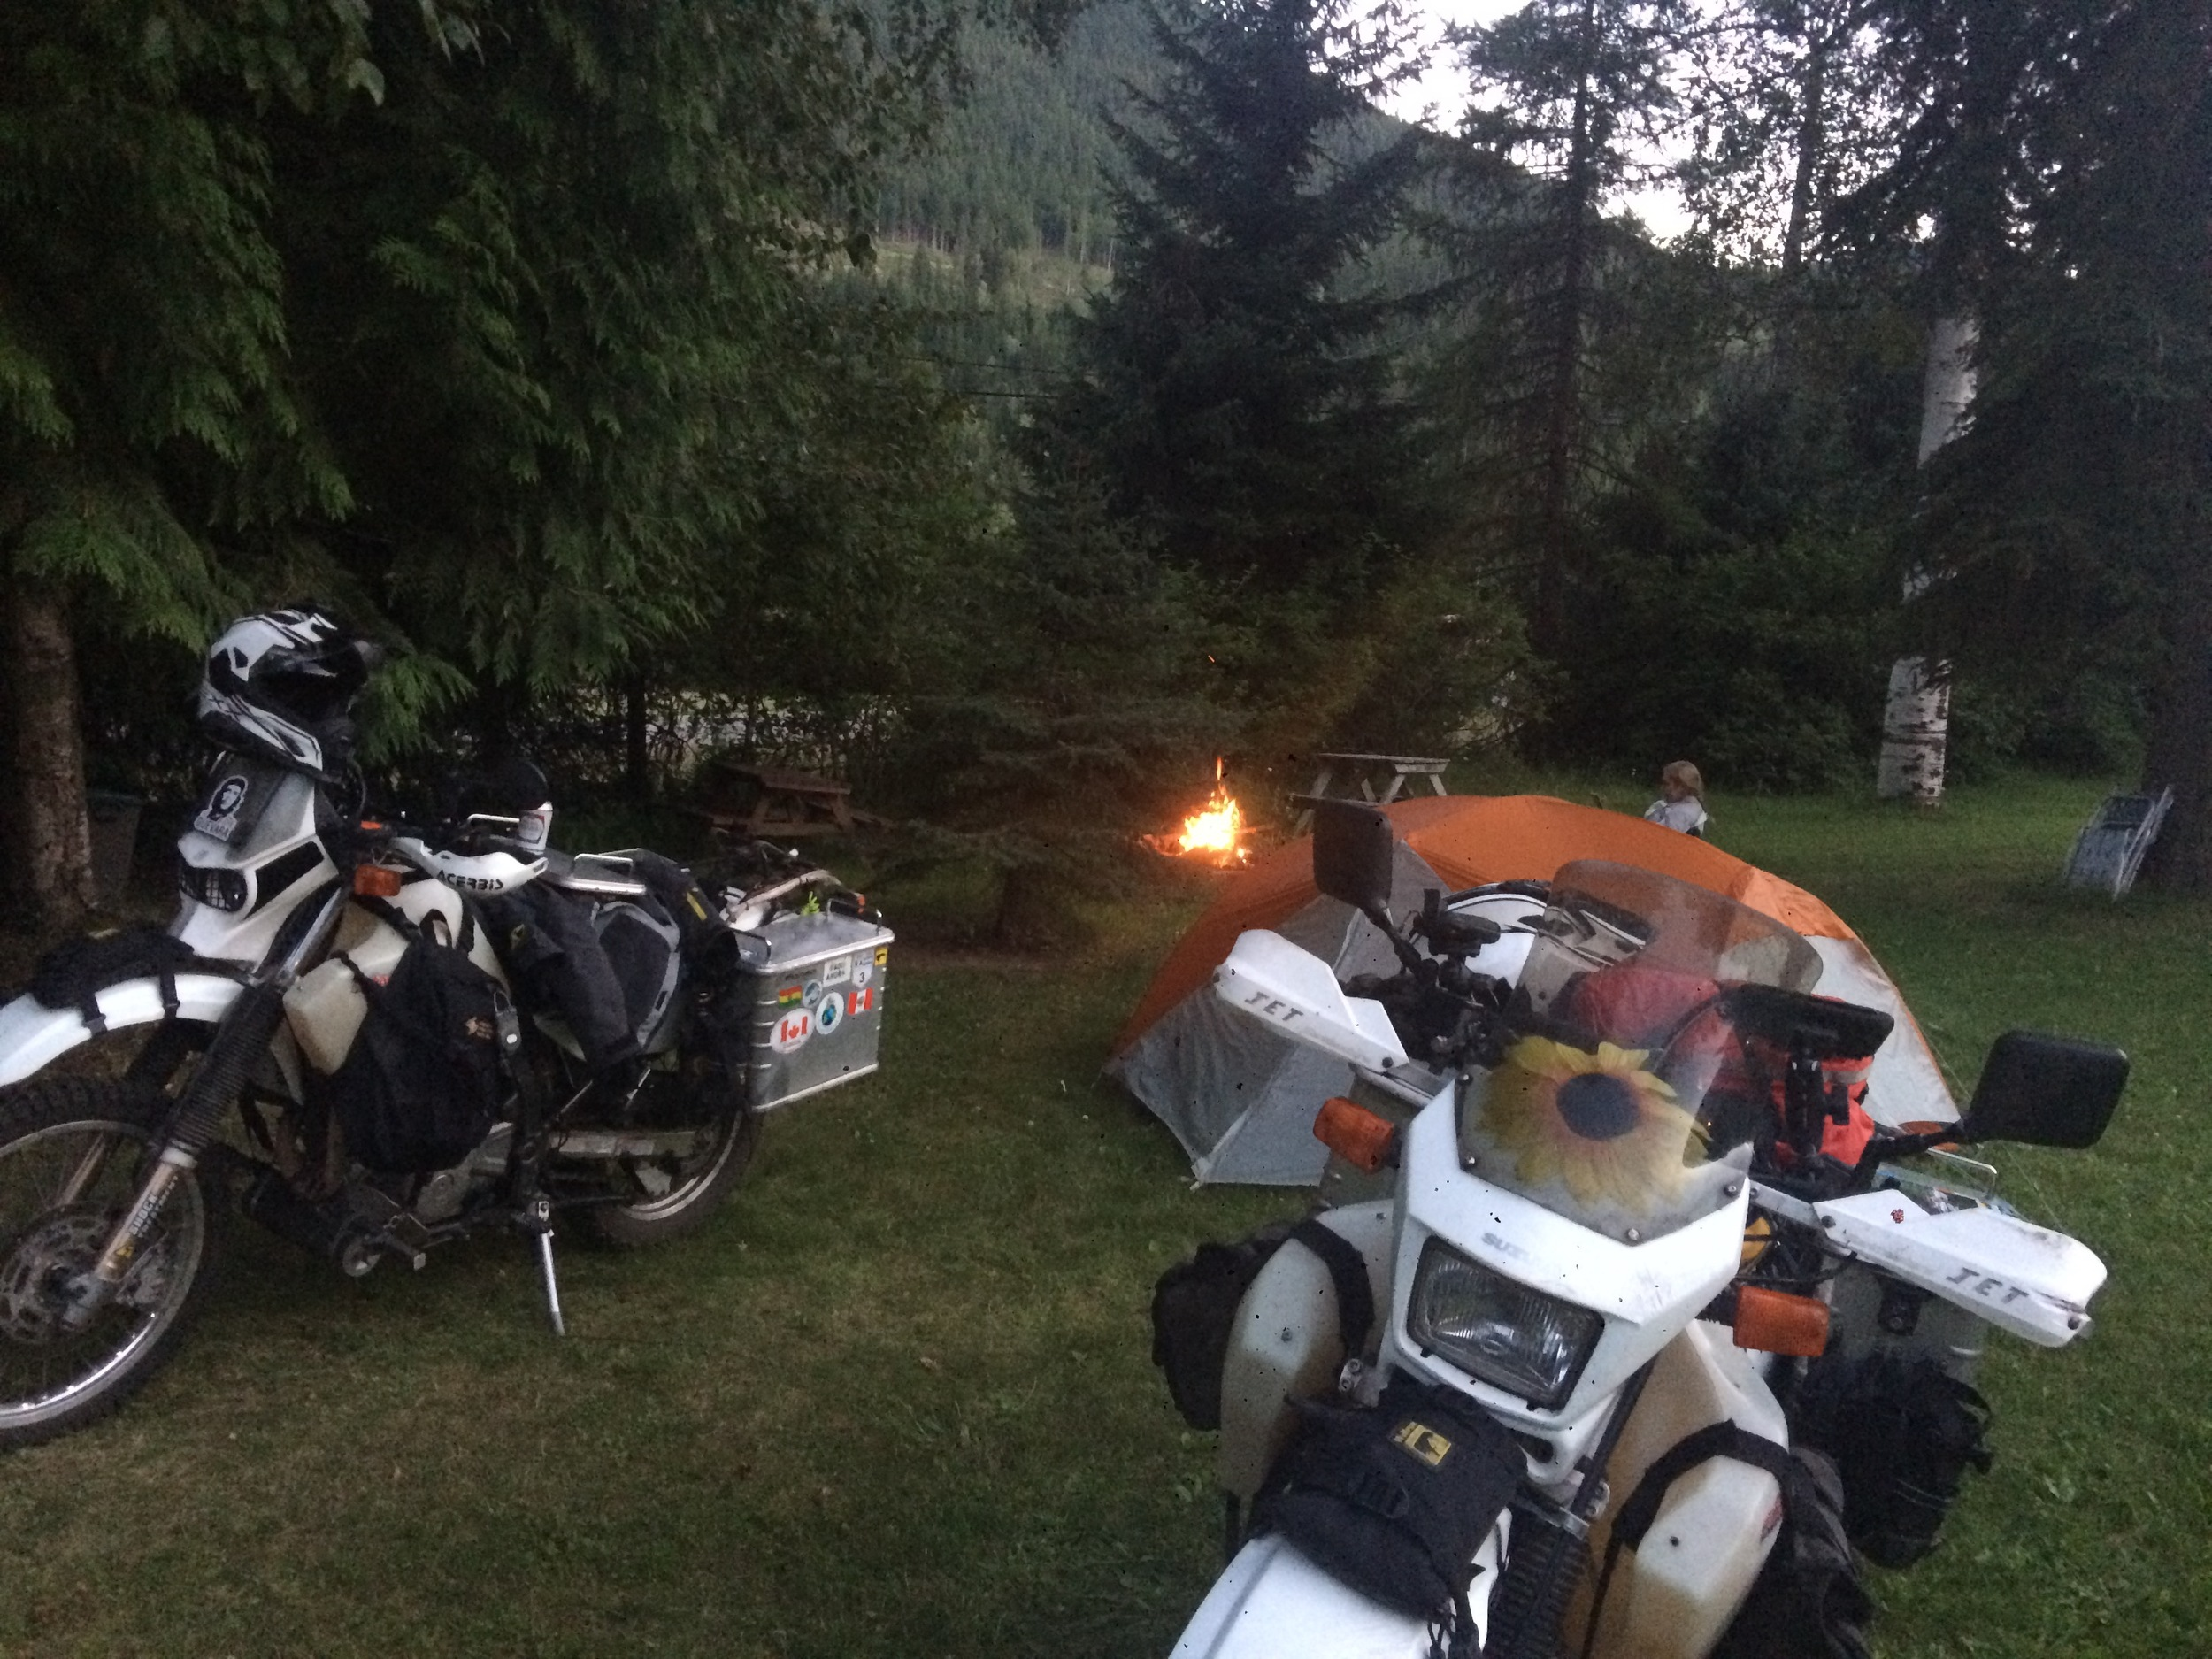 Nice grassy spot and a campfire near Salmo, BC